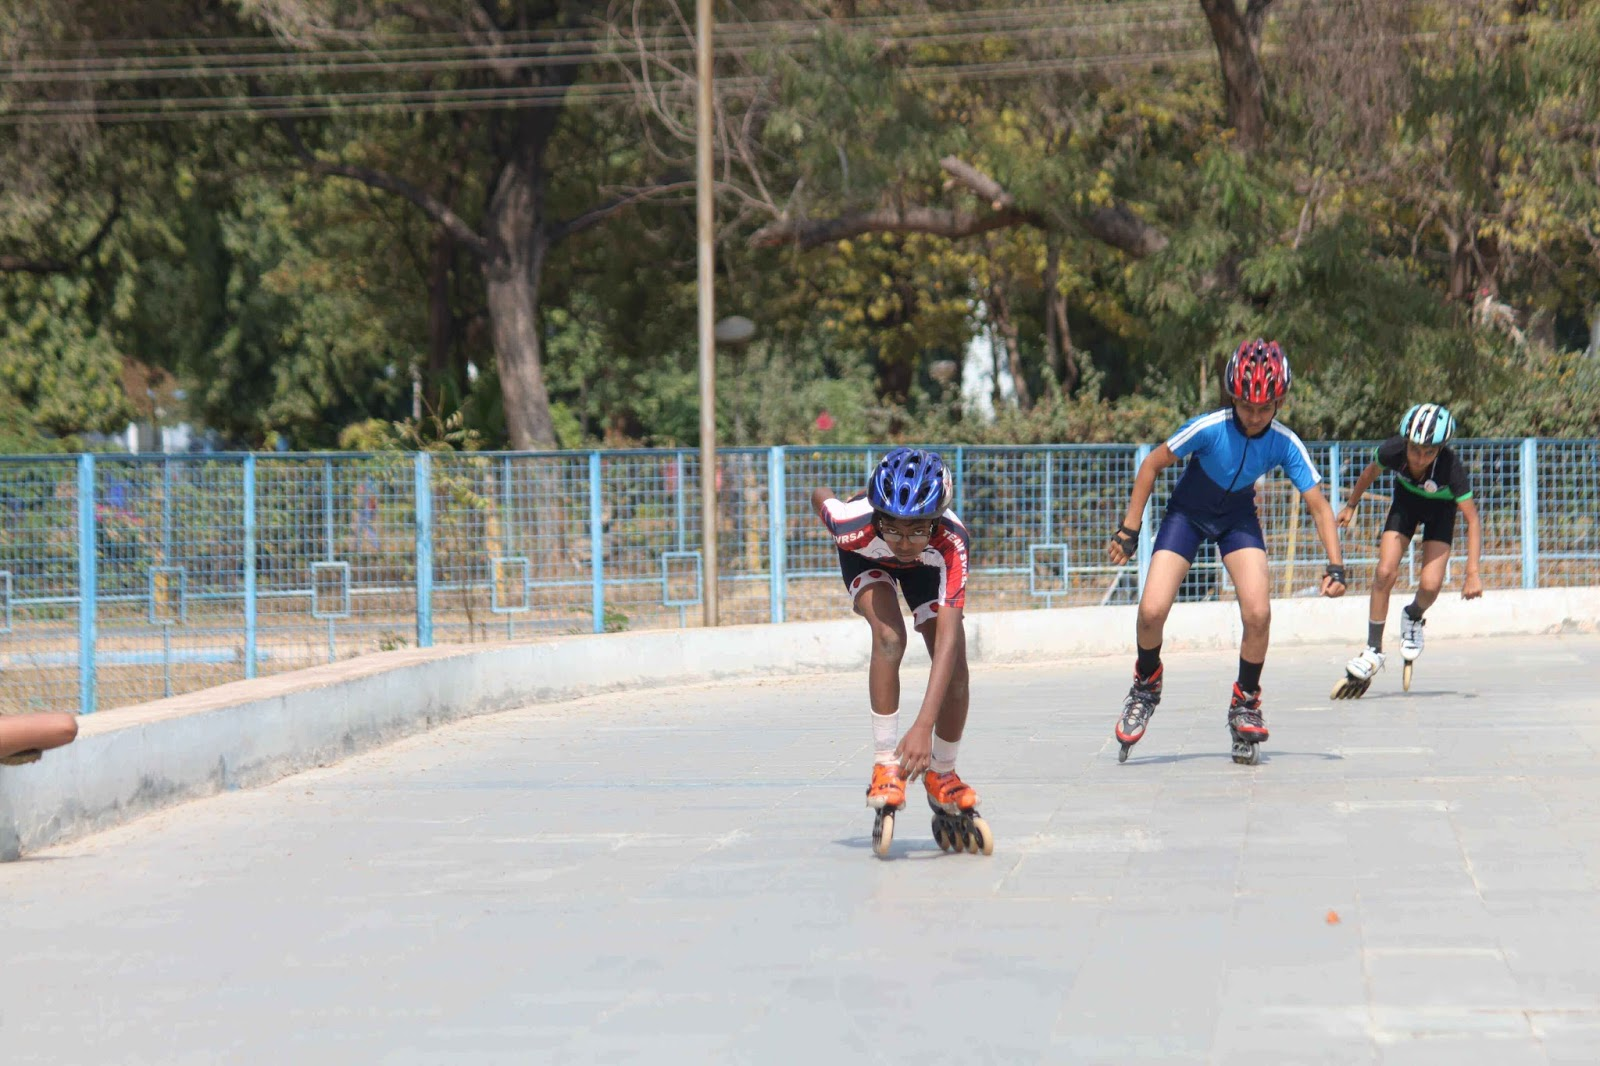 skating classes at kphb colony in hyderabad inline skates